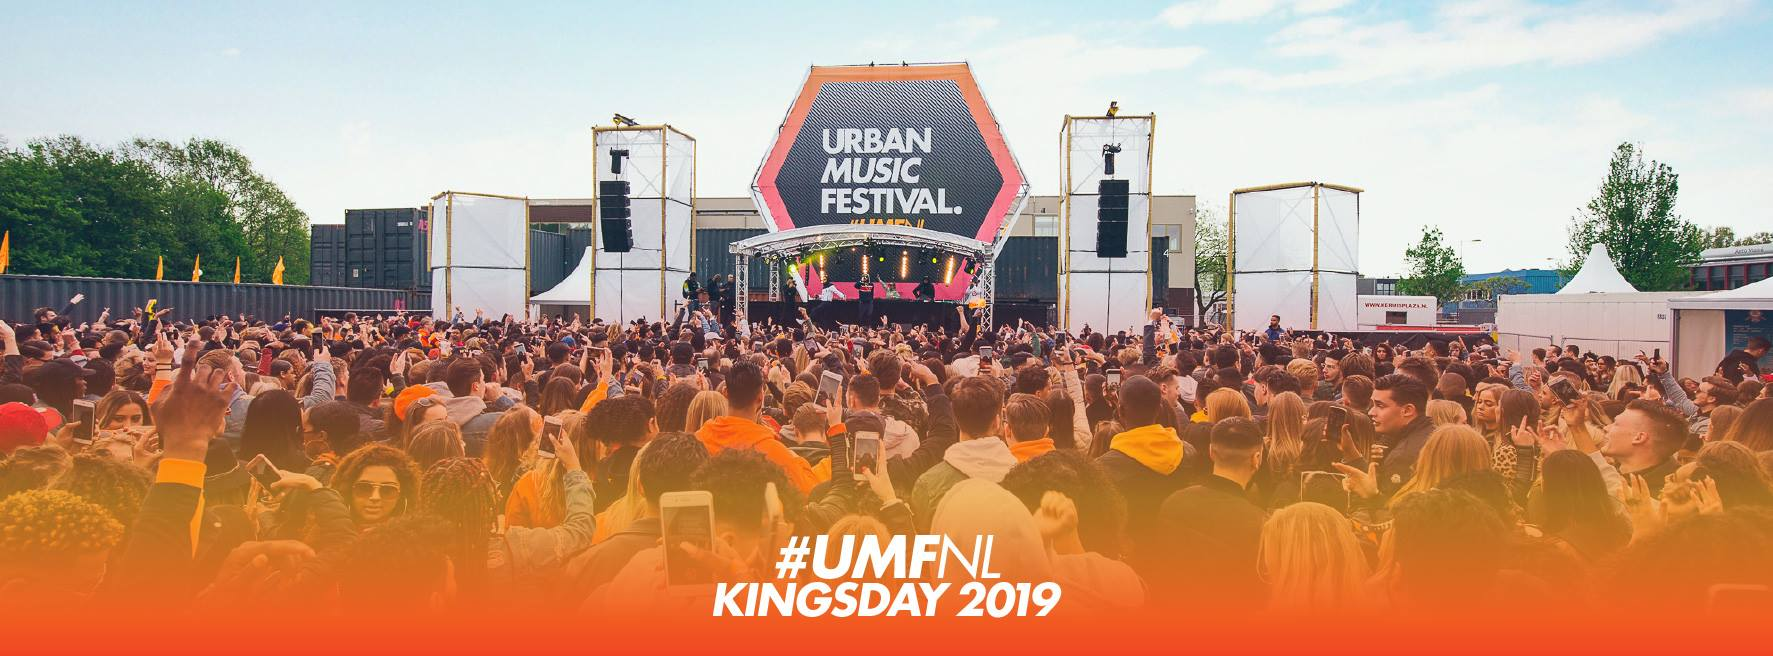 Urban Music Festival Kingsday 2019 | Amsterdam